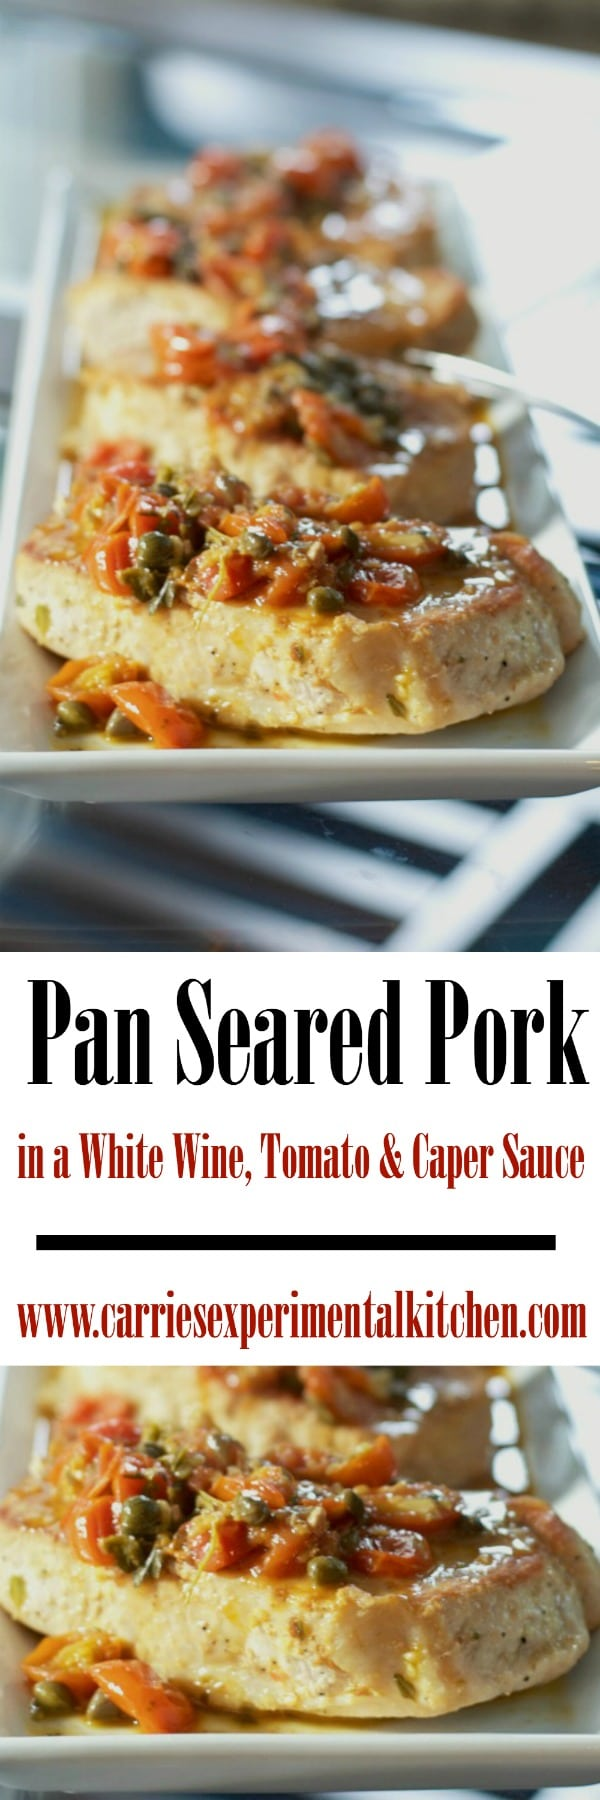 Pan Seared Pork in a White Wine, Tomato & Caper Sauce is a deliciously light and flavorful weeknight meal that's ready in under 30 minutes.